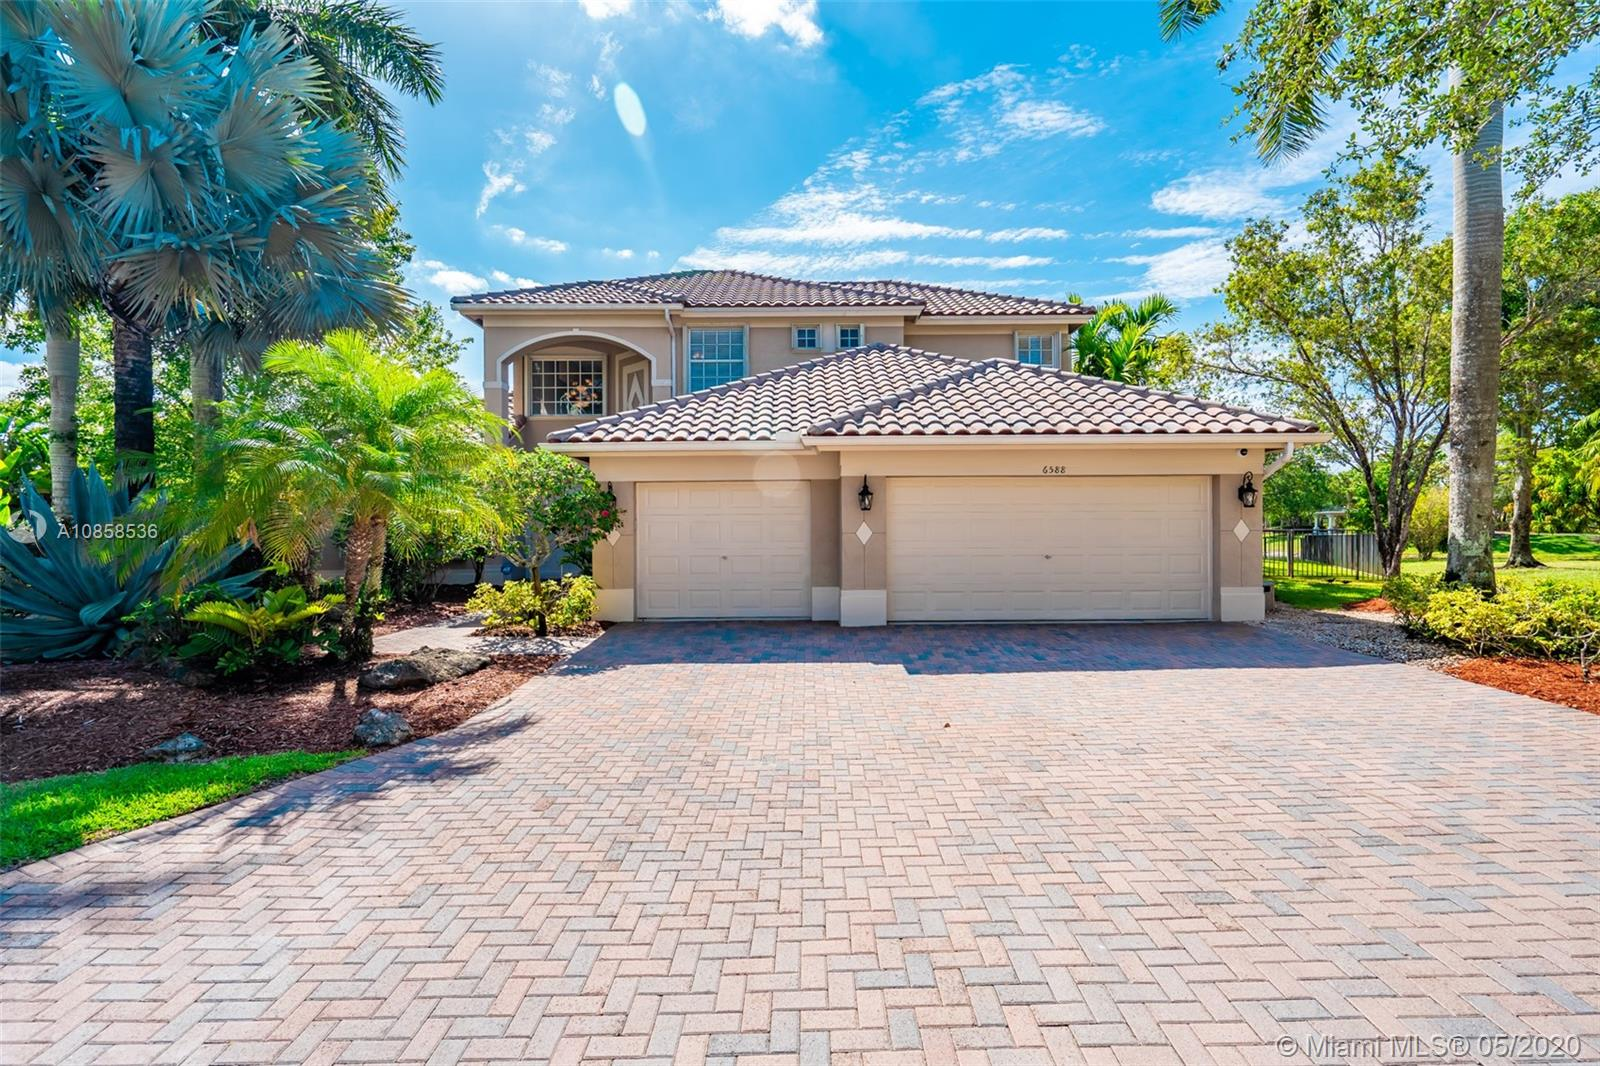 WOW!! Great opportunity to move right into this PRICED TO SELL spacious one of a kind CUSTOM Home featuring 5 bedrooms 4 baths 3 car garage located in Bayside Estates with a fabulous oversized culdesac lot. Fenced area, beautiful heated pool & spa on a large wide lake complete with generator hookup & accordion shutters or impact glass throughout. New Roof in 2006. Updated bright kitchen with quartz counters & eat-in area, updated bathrooms, carpet free first floor. Second floor makes great kids wing with 3 bedrooms 2 baths plus loft! Service contract included. Enjoy living in Parkland Isles with 2 access gates, clubhouse with onsite management, fitness, pool, & tennis. Square footage as per builders plans is 4819 under roof & 3733 under air!